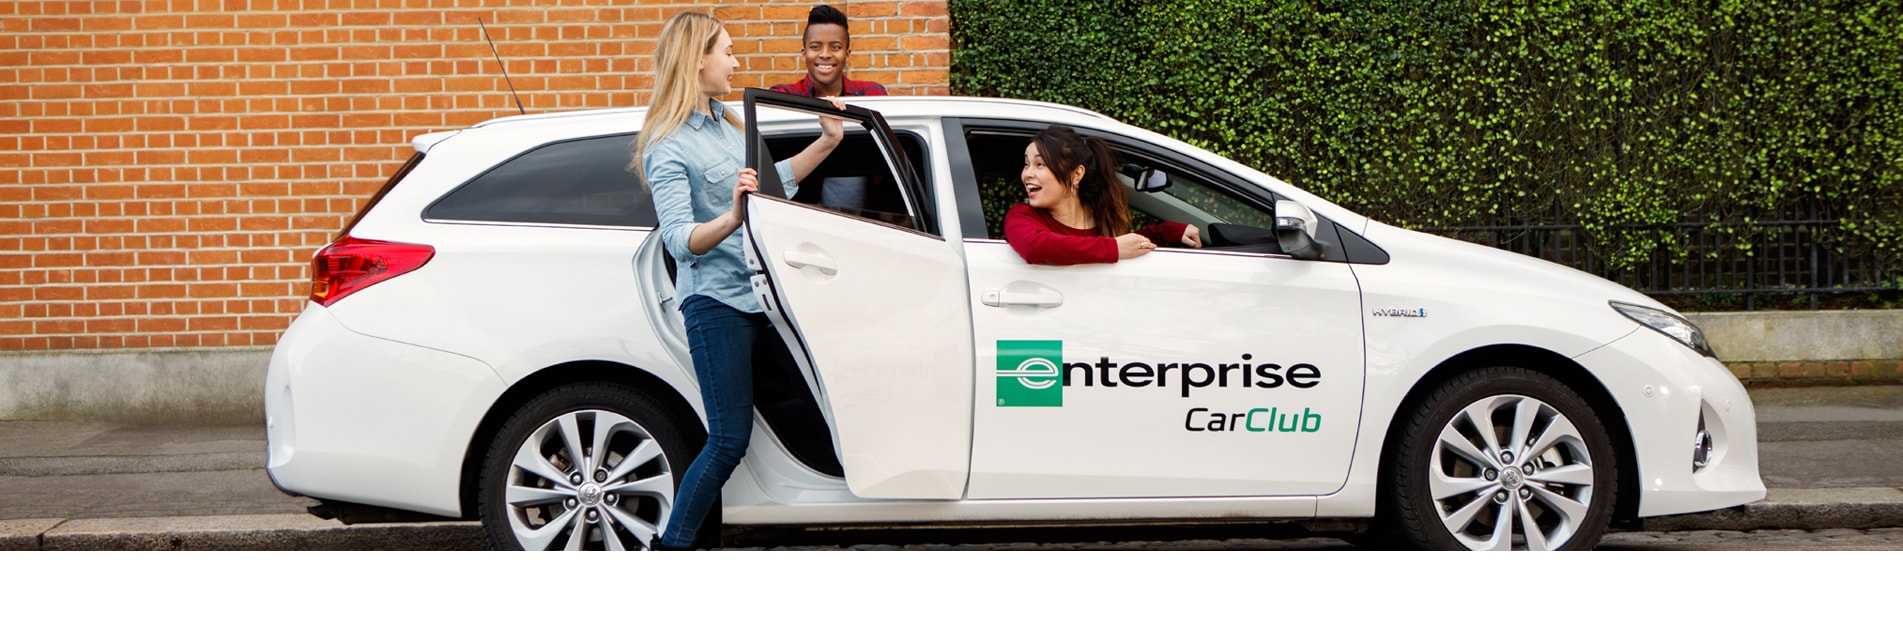 Enterprise Car Club - Hourly Vehicle Hire